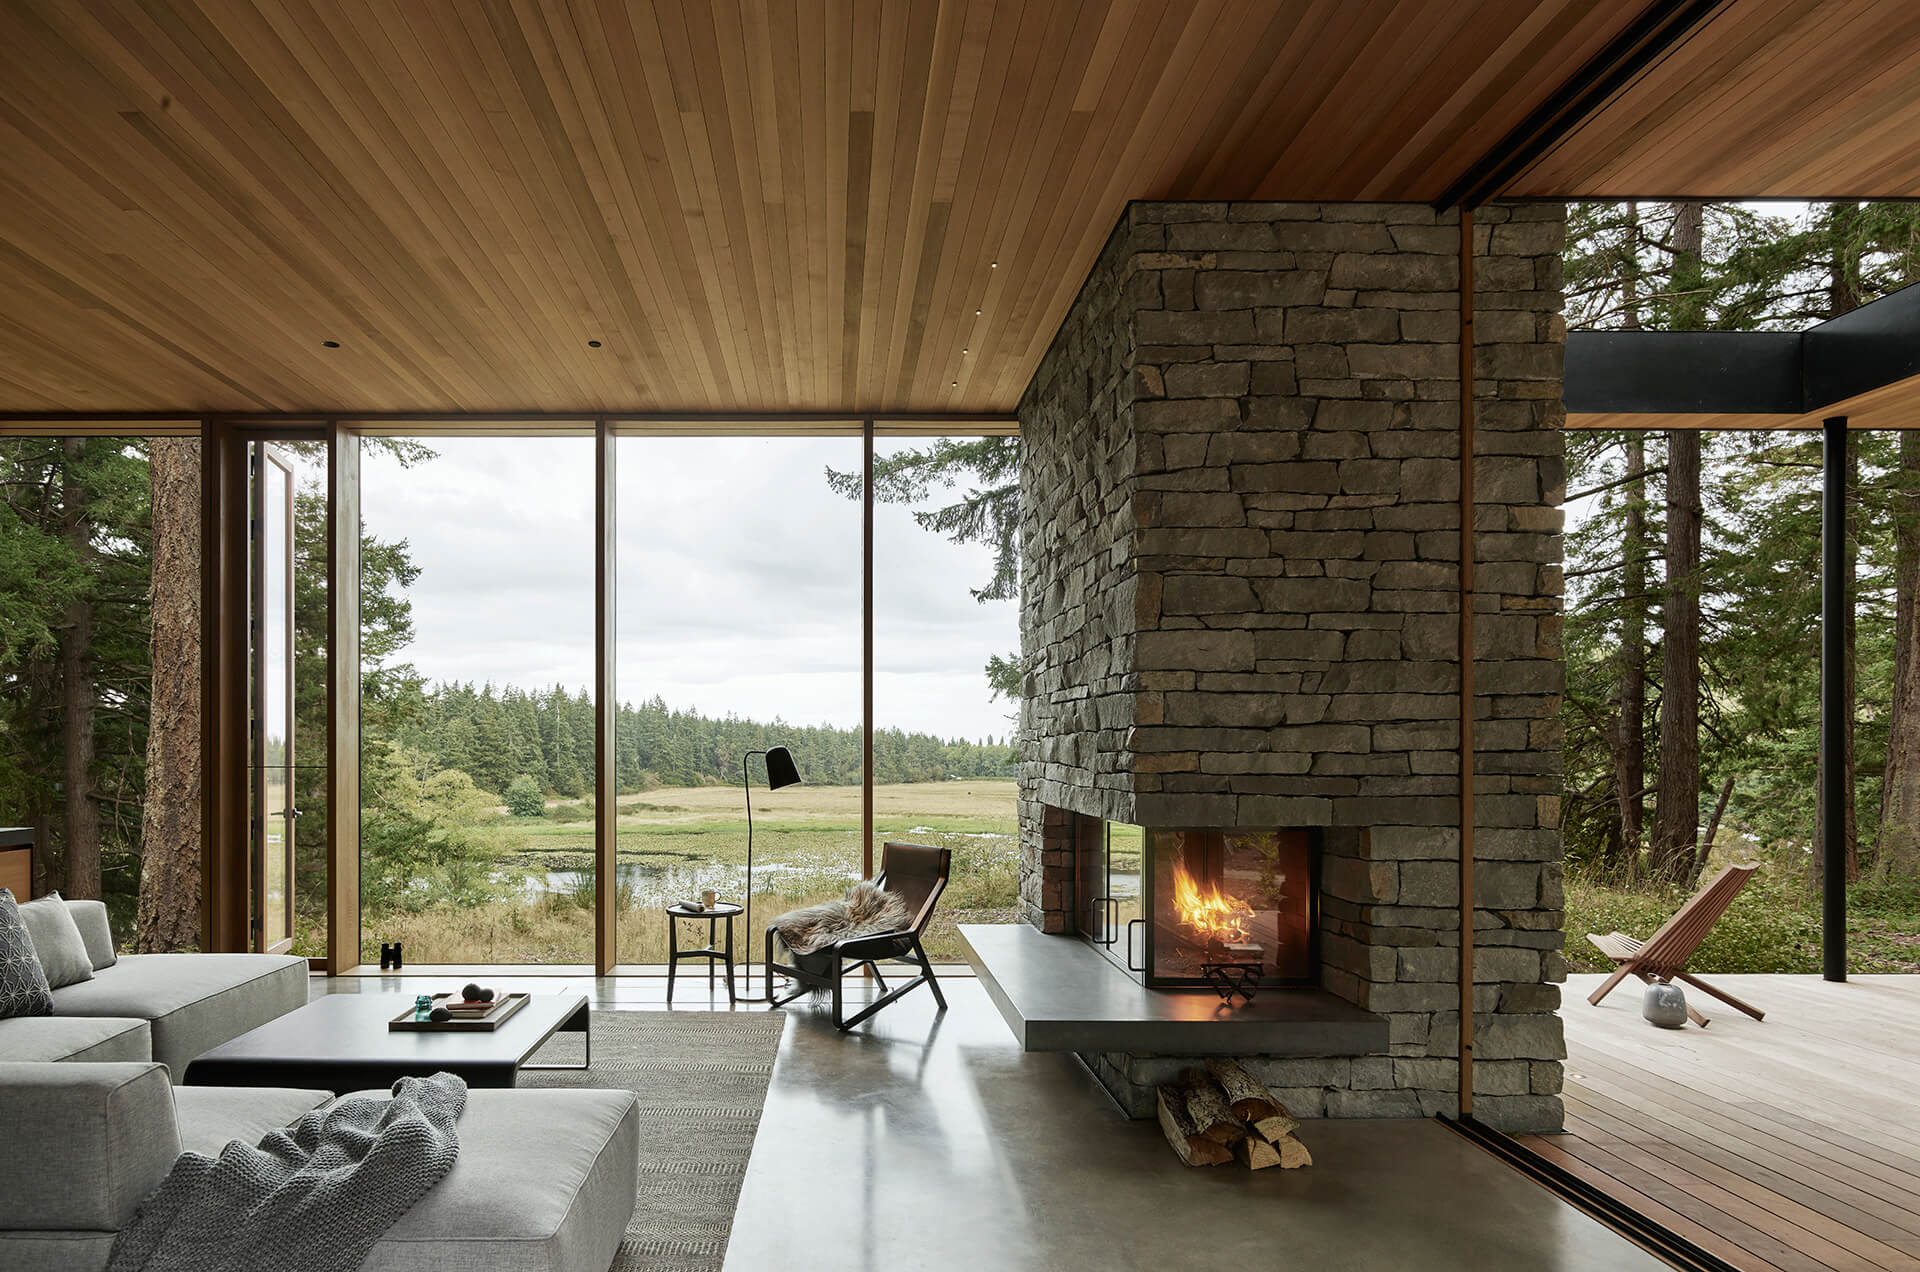 Interior perspective framing views of the pastoral landscape | Whidbey Island Farm Retreat by mwworks | STIRworld